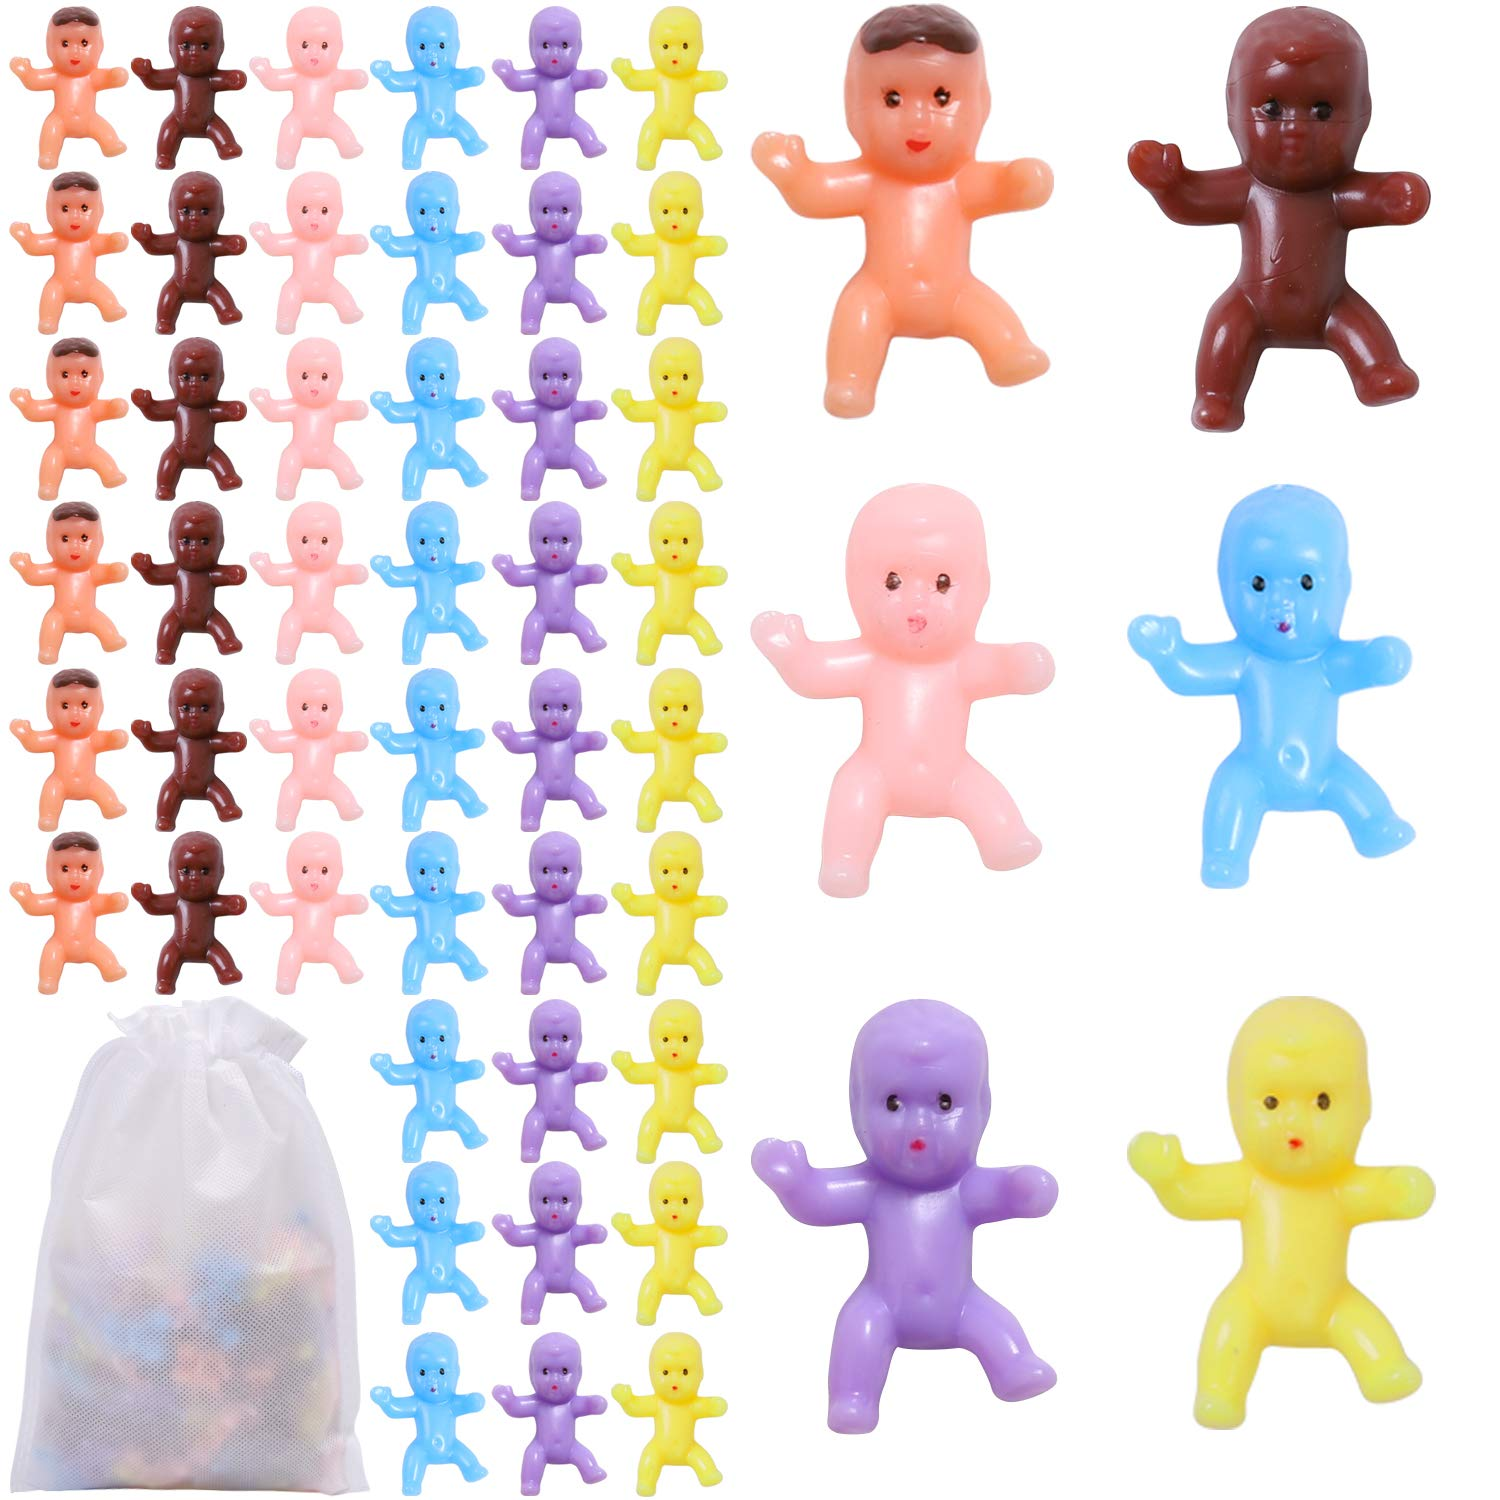 90 Pieces Mini Plastic Babies Baby Shower Games Party Ice Cube Party Decorations,1 inch Plastic Babies Doll for Baby Bathing and Crafting Latin, Dark Brown, Pink, Yellow, Purple, Blue